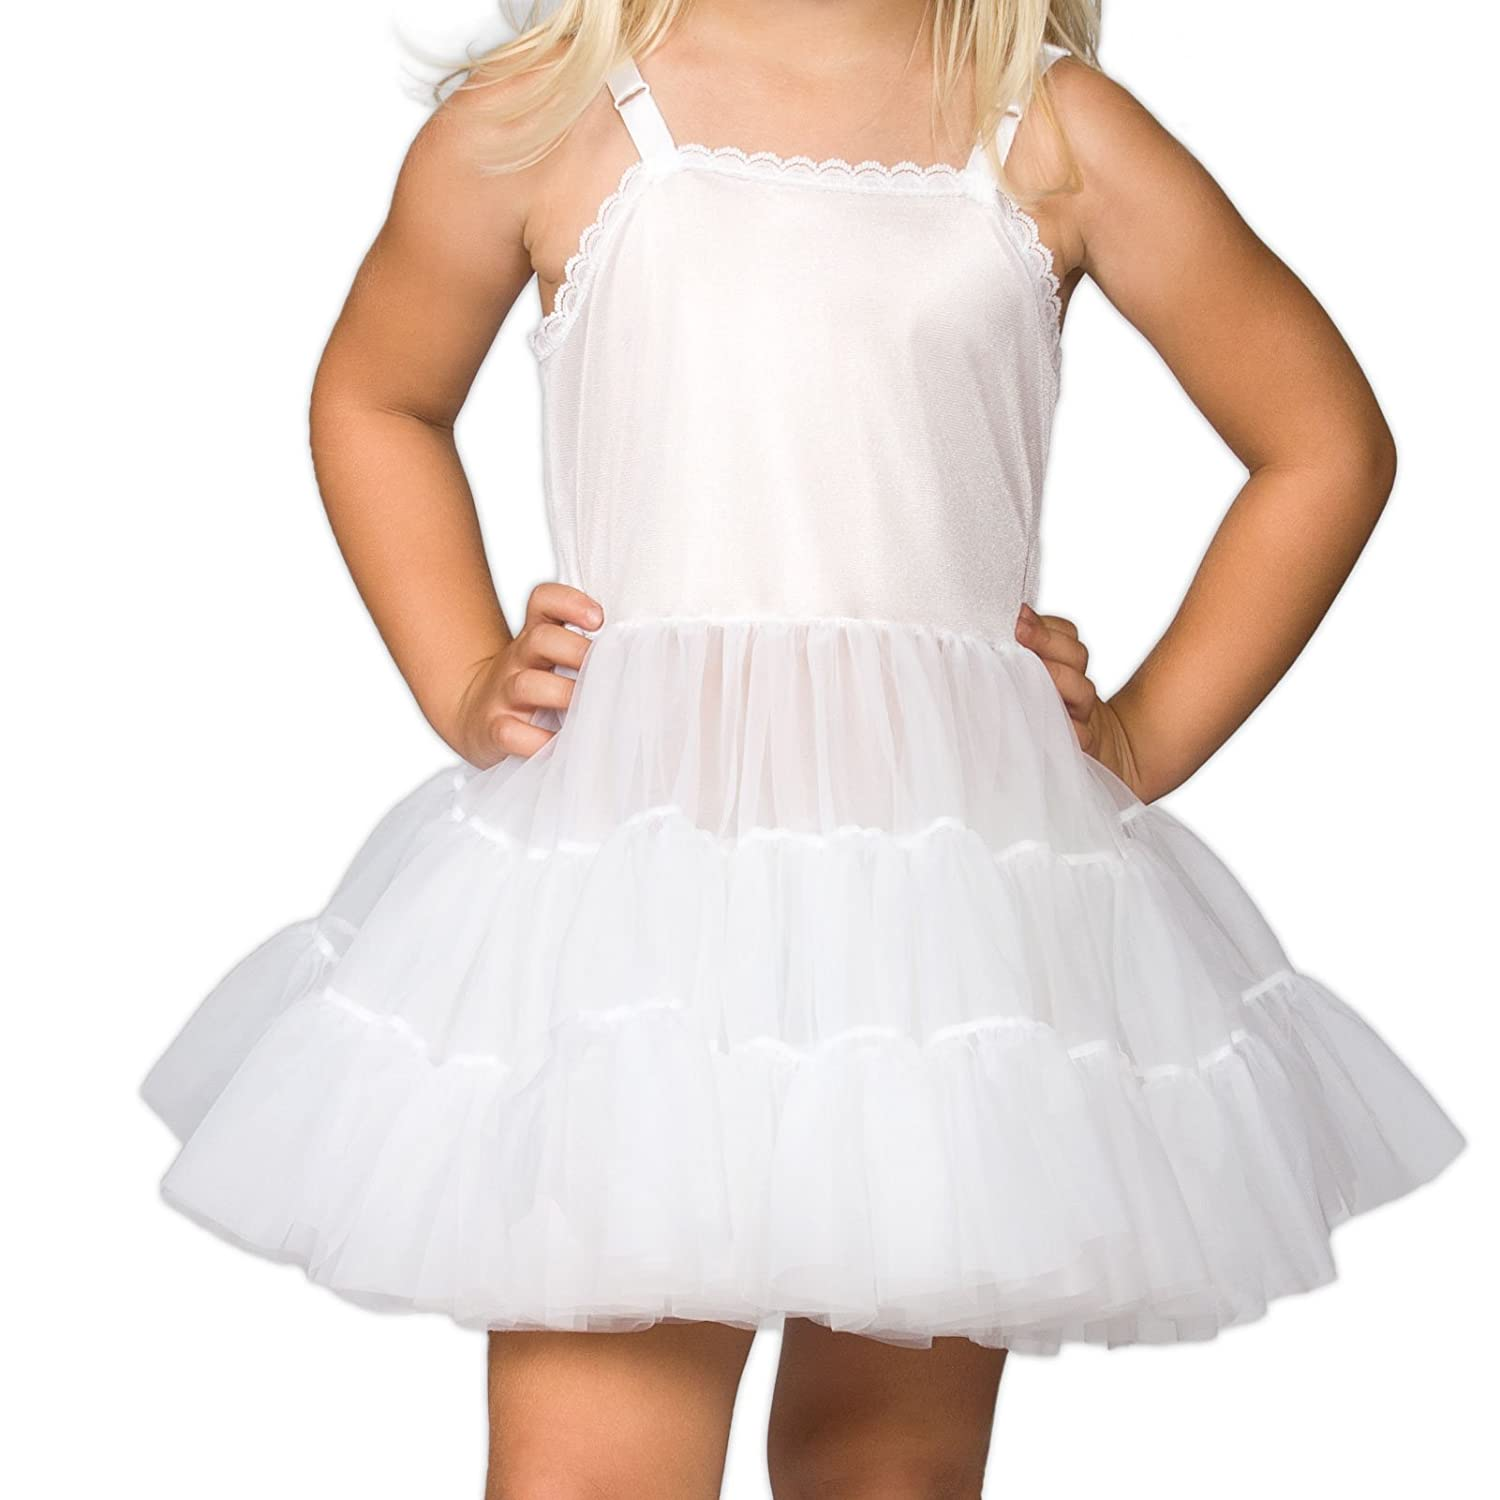 I.C. Collections Big Girls White Bouffant Slip Petticoat - Extra Full, 8 New ICM 000498-WHC